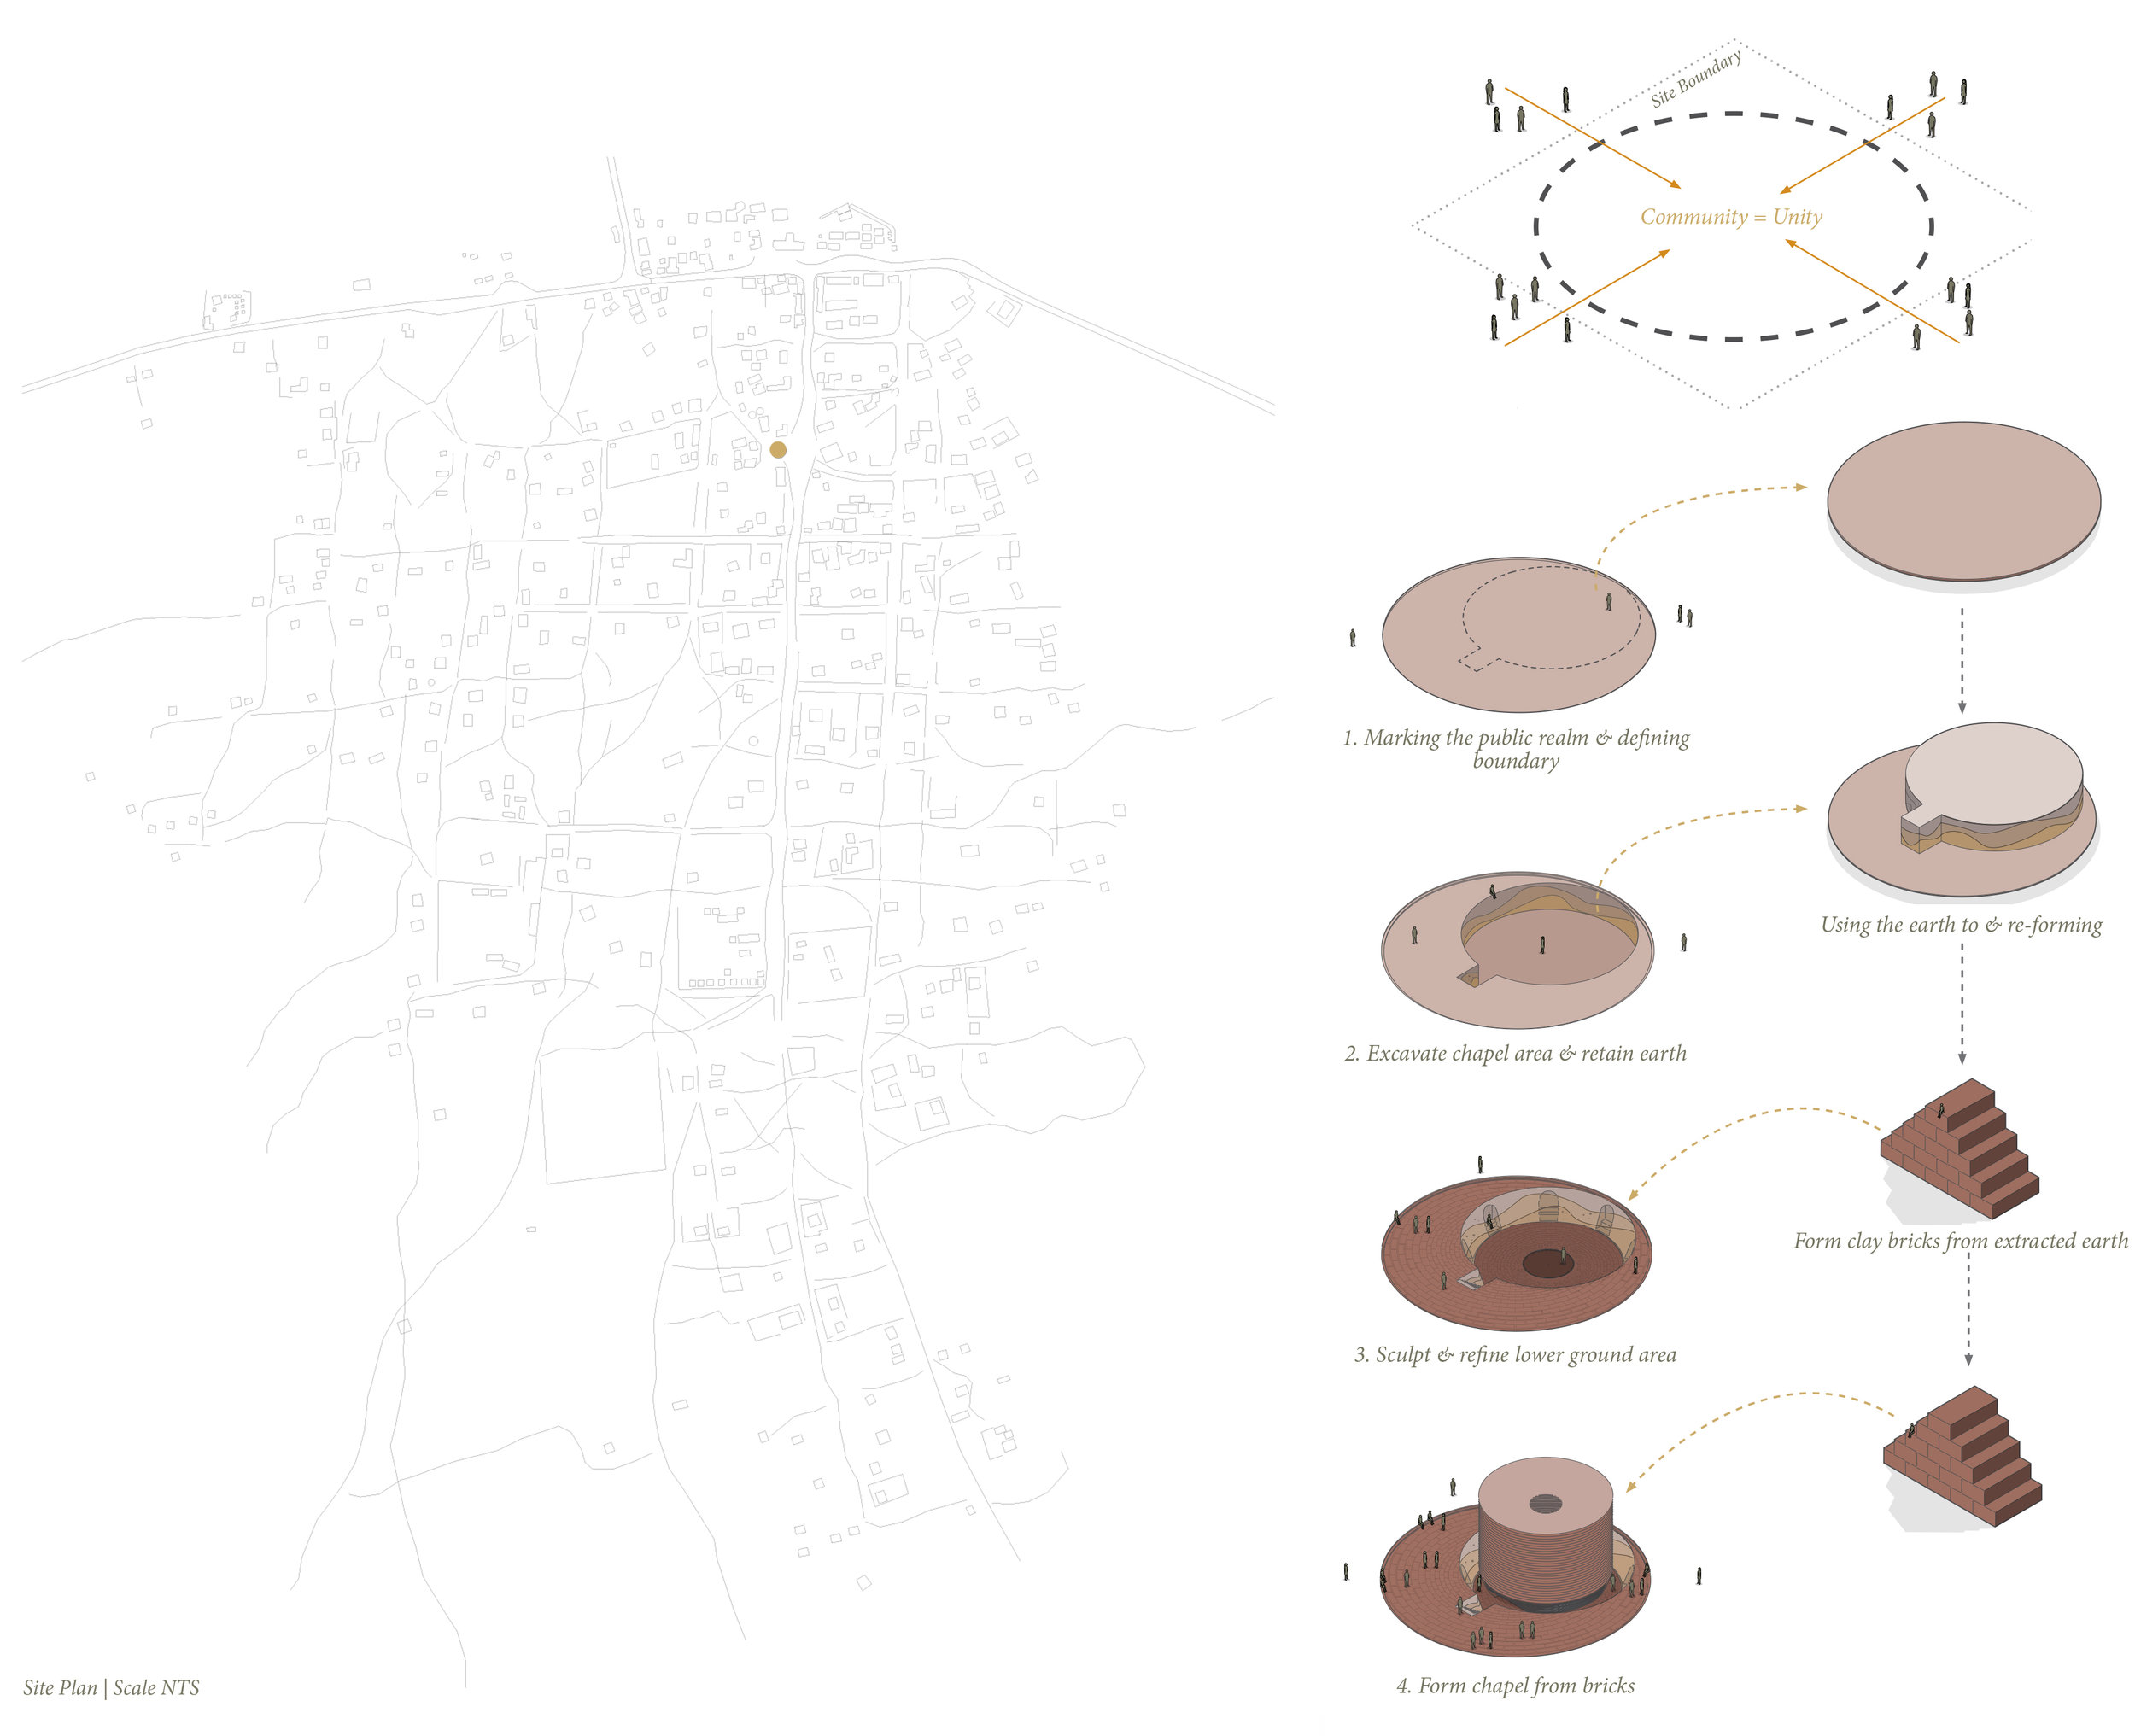 Overall Site Plan and Concept